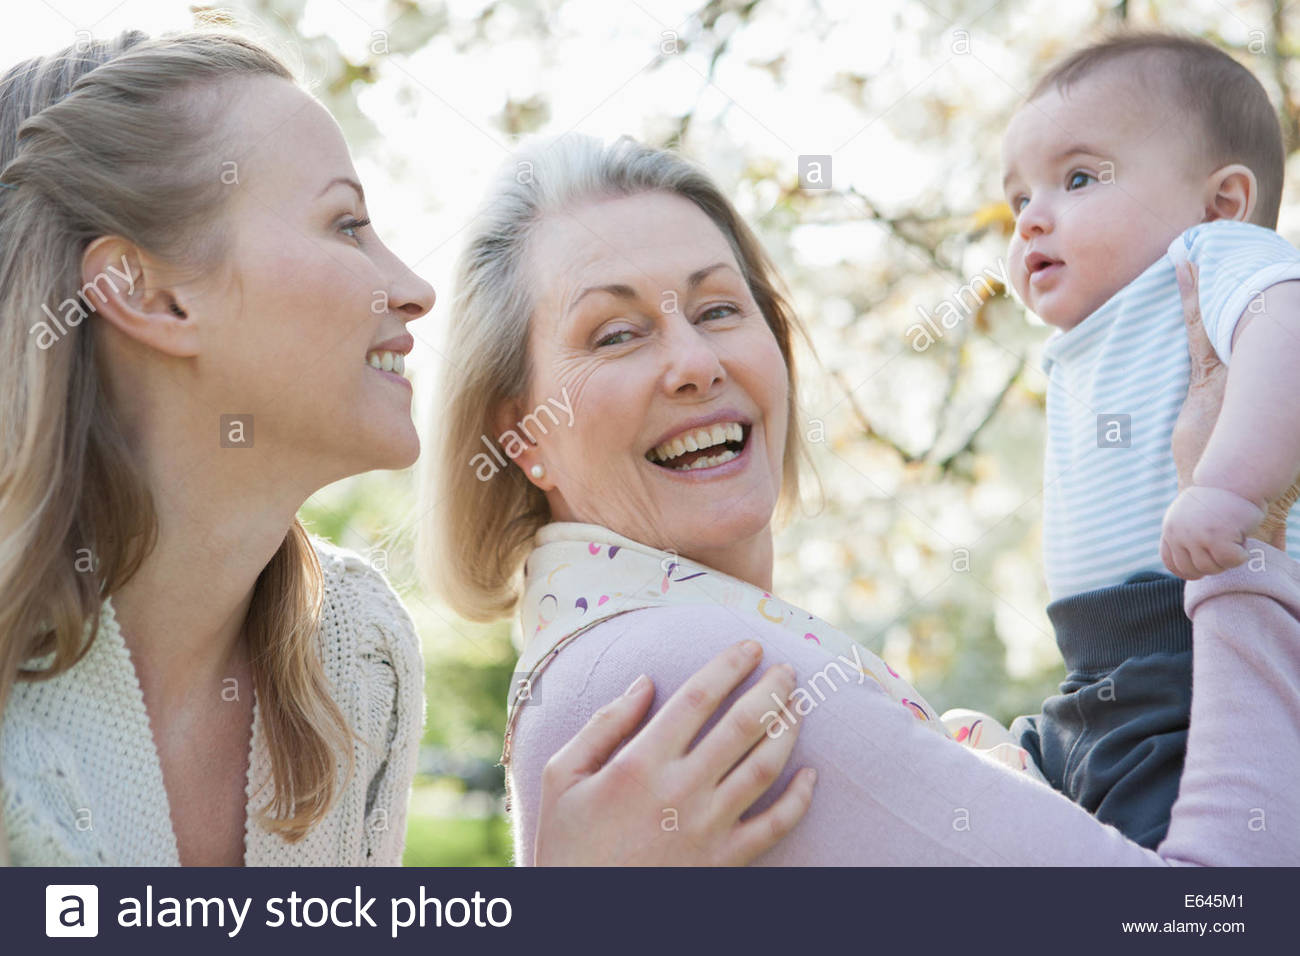 Smiling grandmother, mother and son - Stock Image